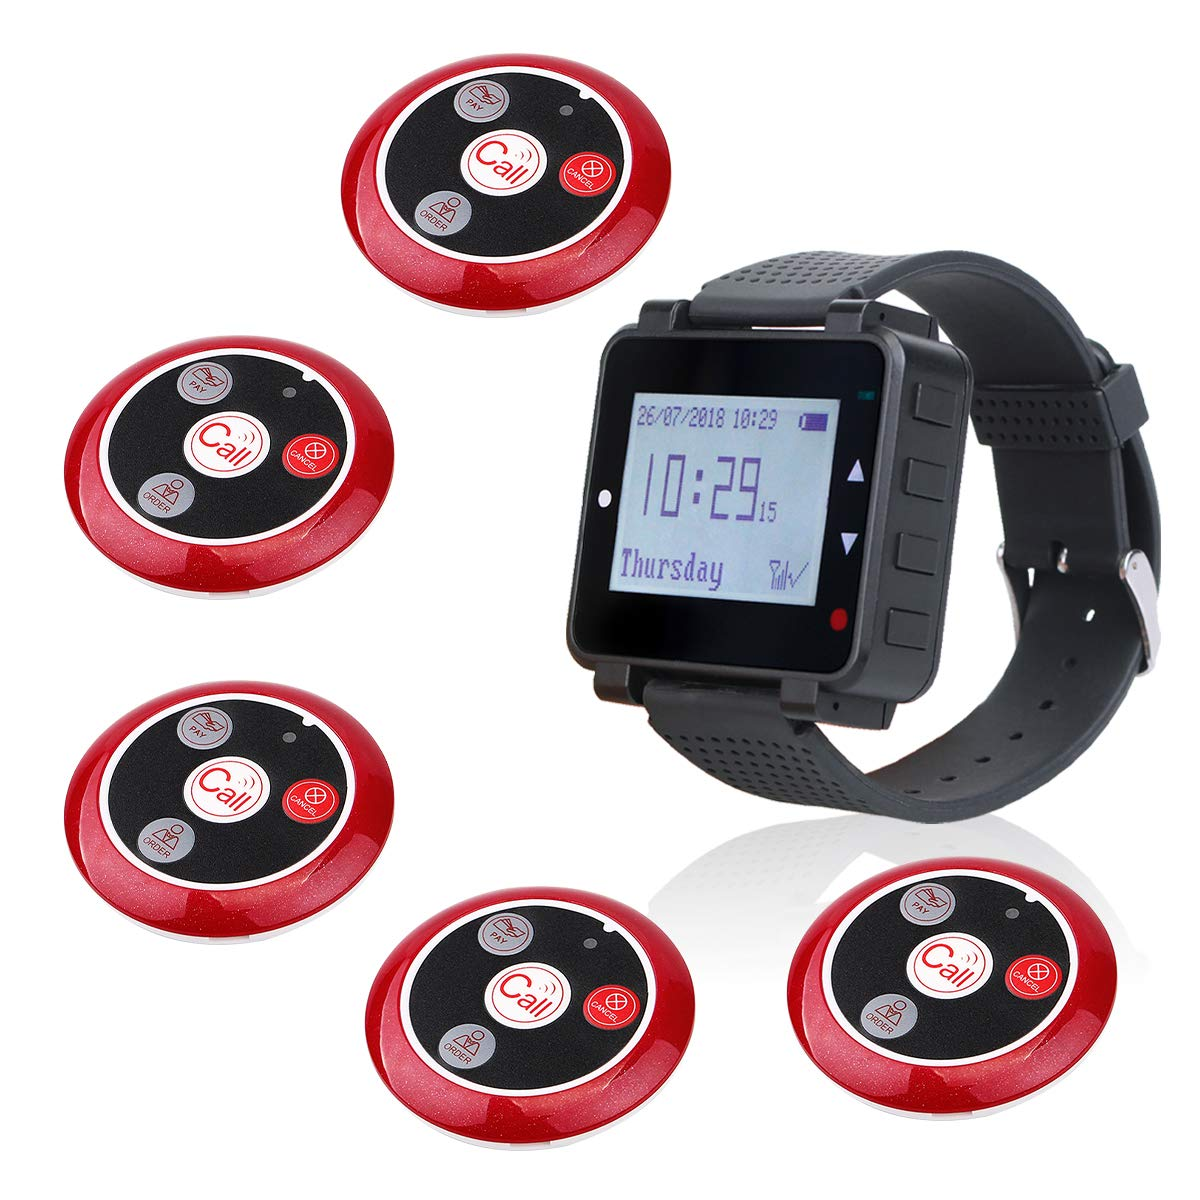 Retekess T128 Restaurant Pager System 5 Pager 1 Wrist Watch User-defined A-Z Letter Area Type Set 40 Selectable Key Function Caregiver Call Button System Pager with Service Multi-function for Hospital